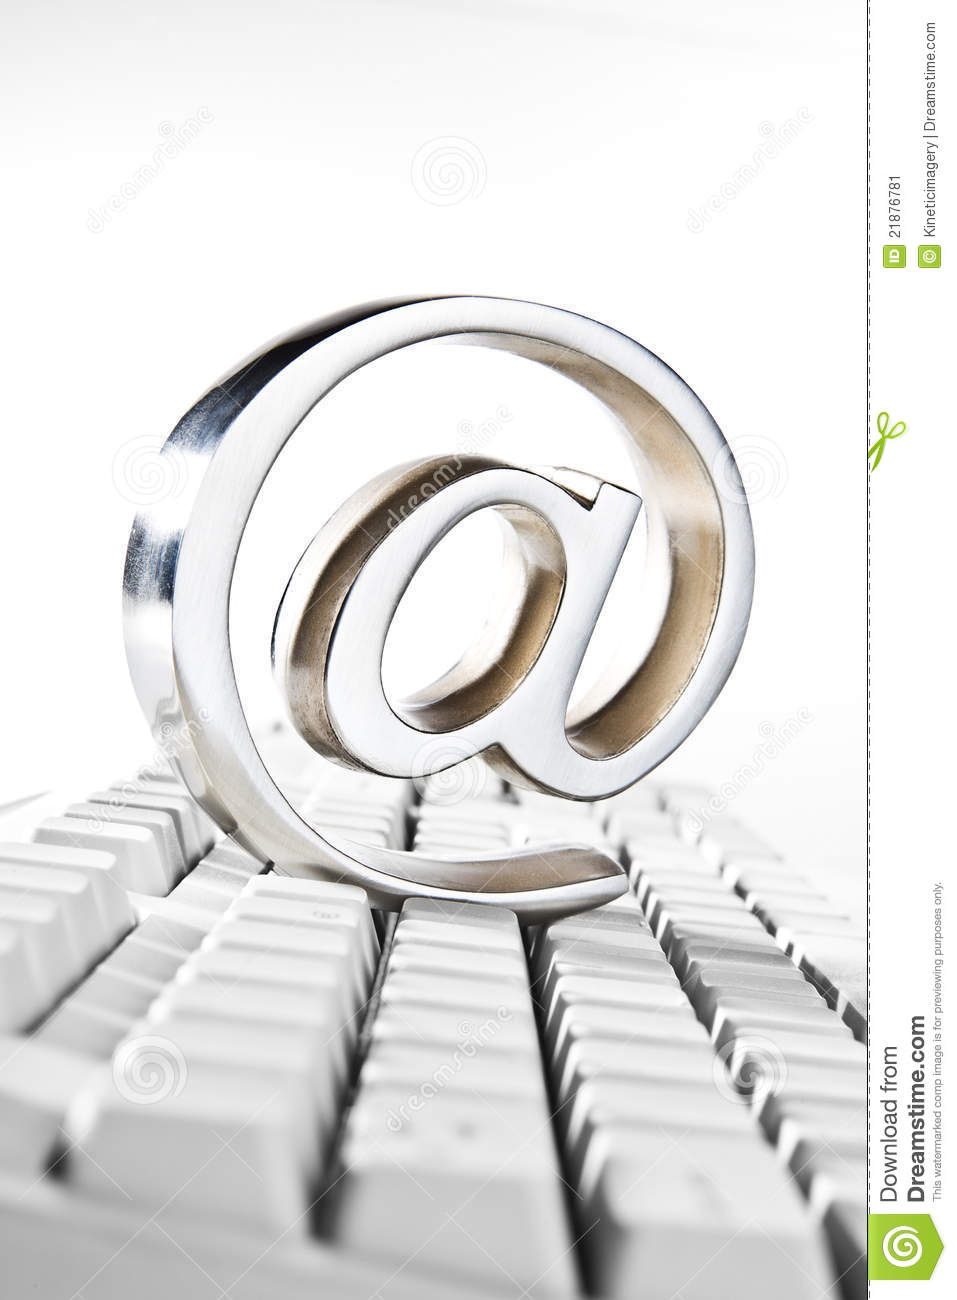 At Symbol Placed On Computer Keyboard Stock Image Image Of Symbol